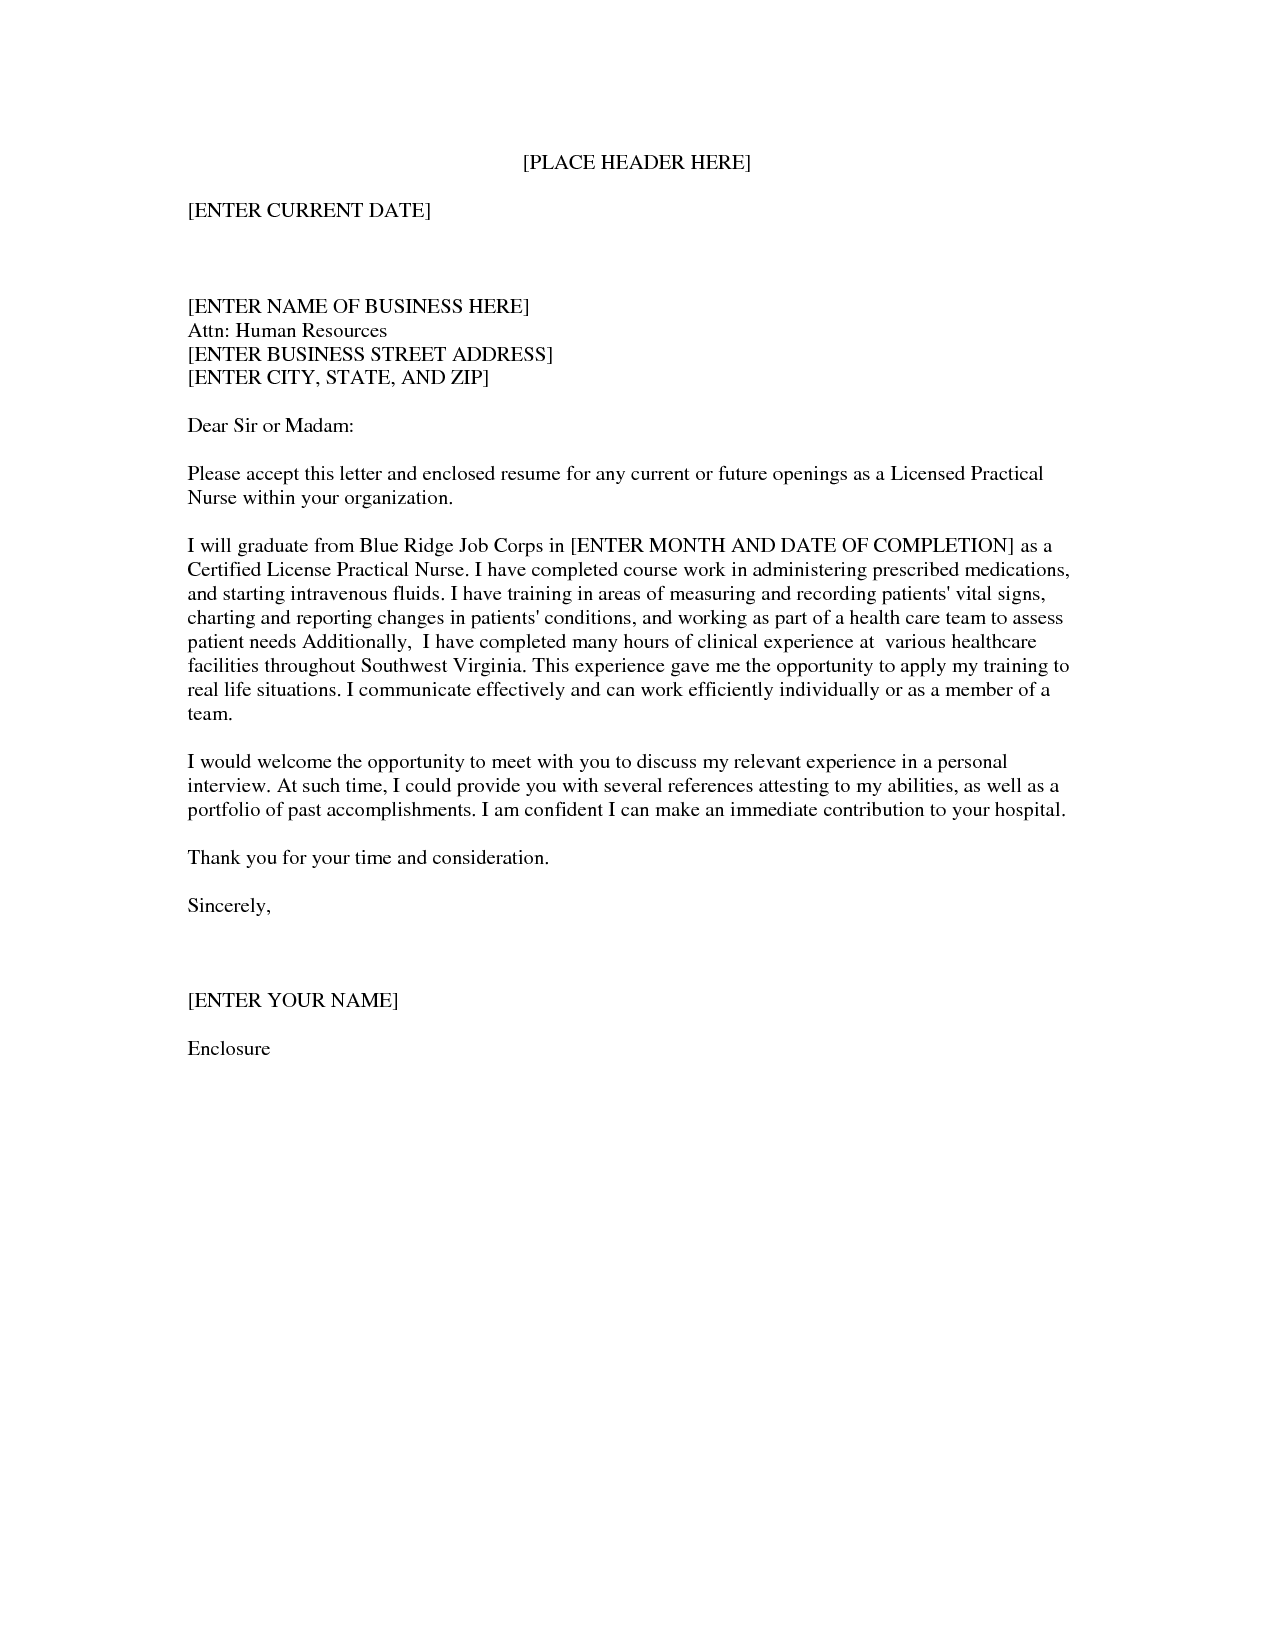 Nurse Auditor Cover Letter | Medicare Auditor Cover Letter Writing A ...